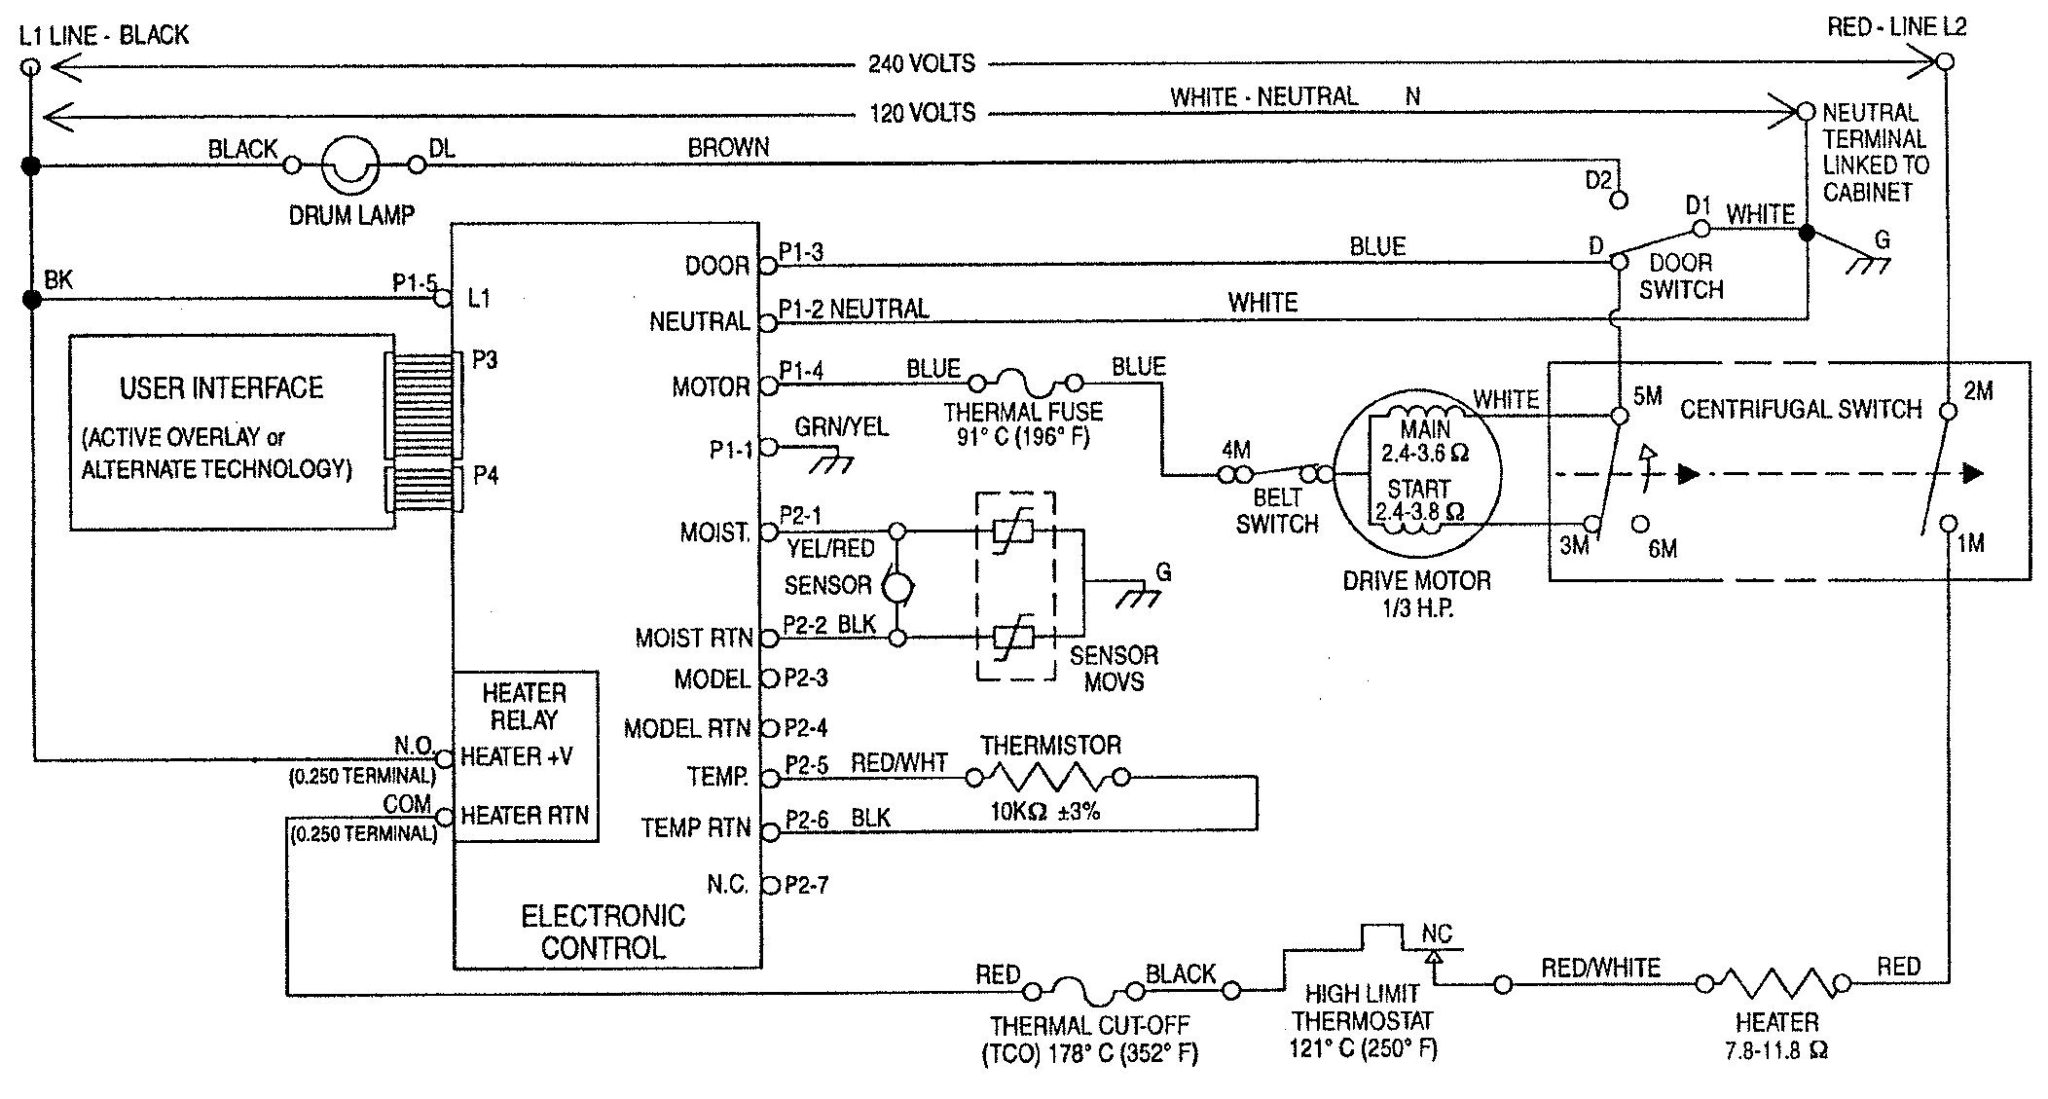 GE Dryer Motor Centrifugal Switch on Ge Gas Dryer Wiring Diagram